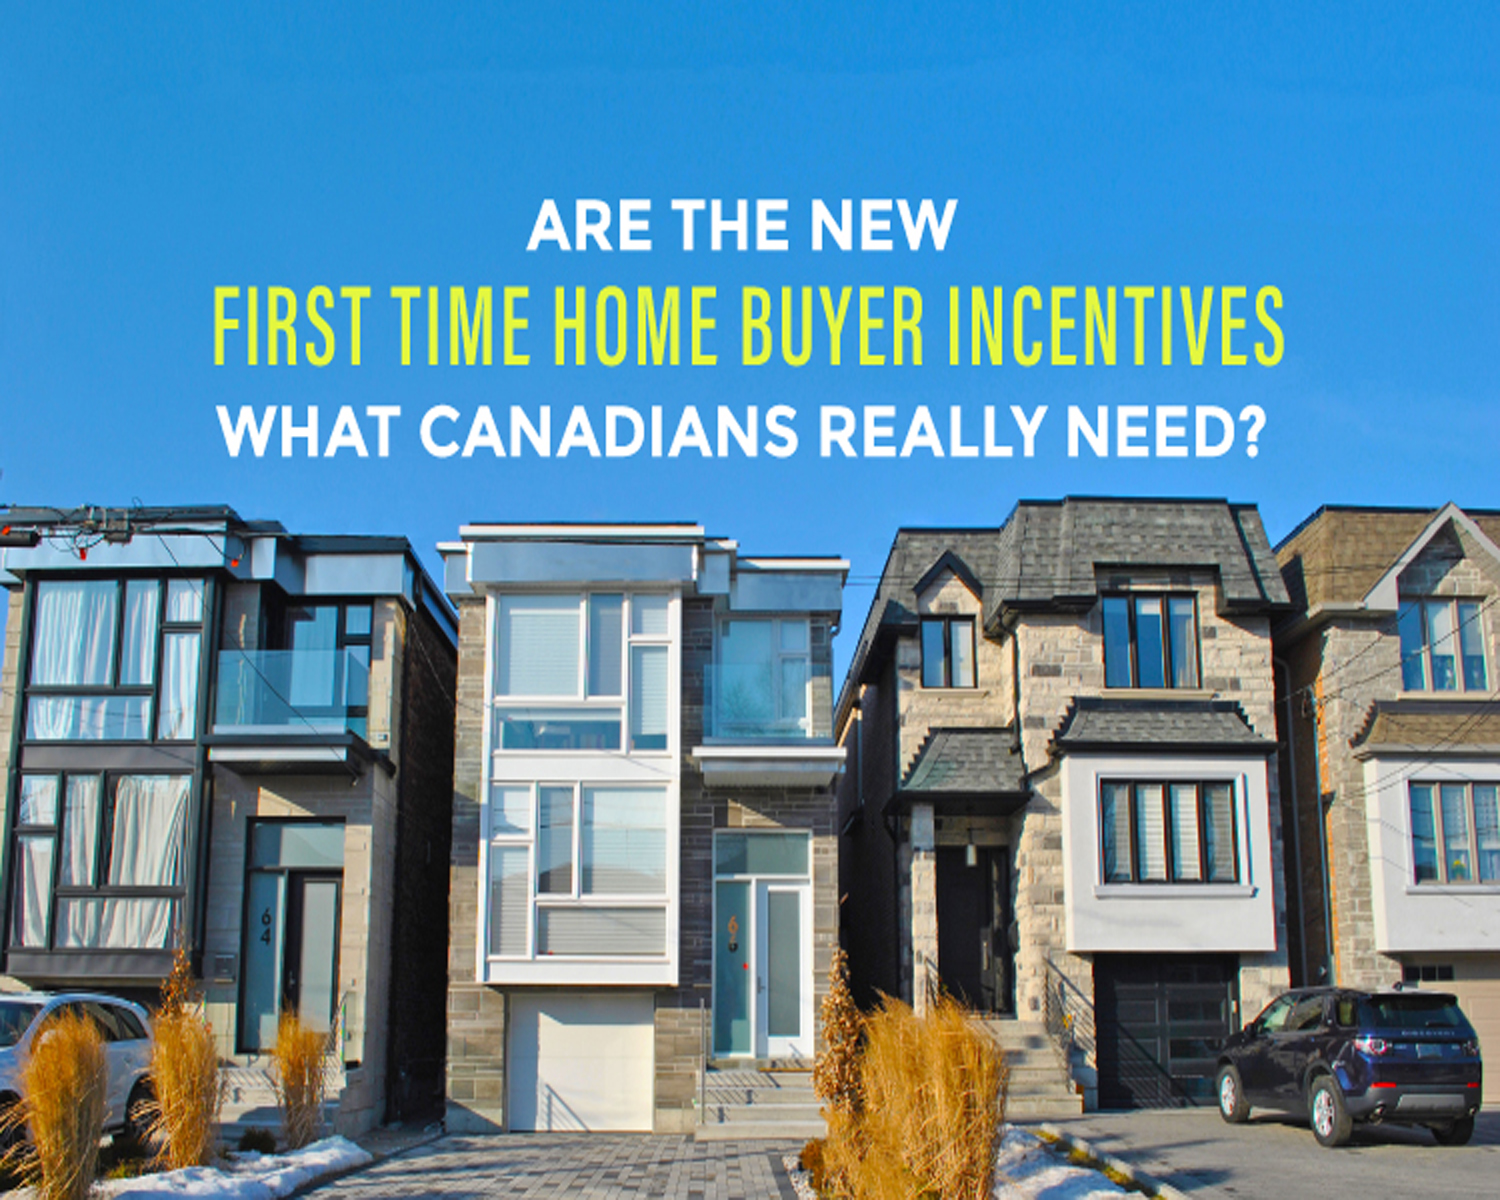 All you need to know about the Canadian First-Time Home Buyer Incentive